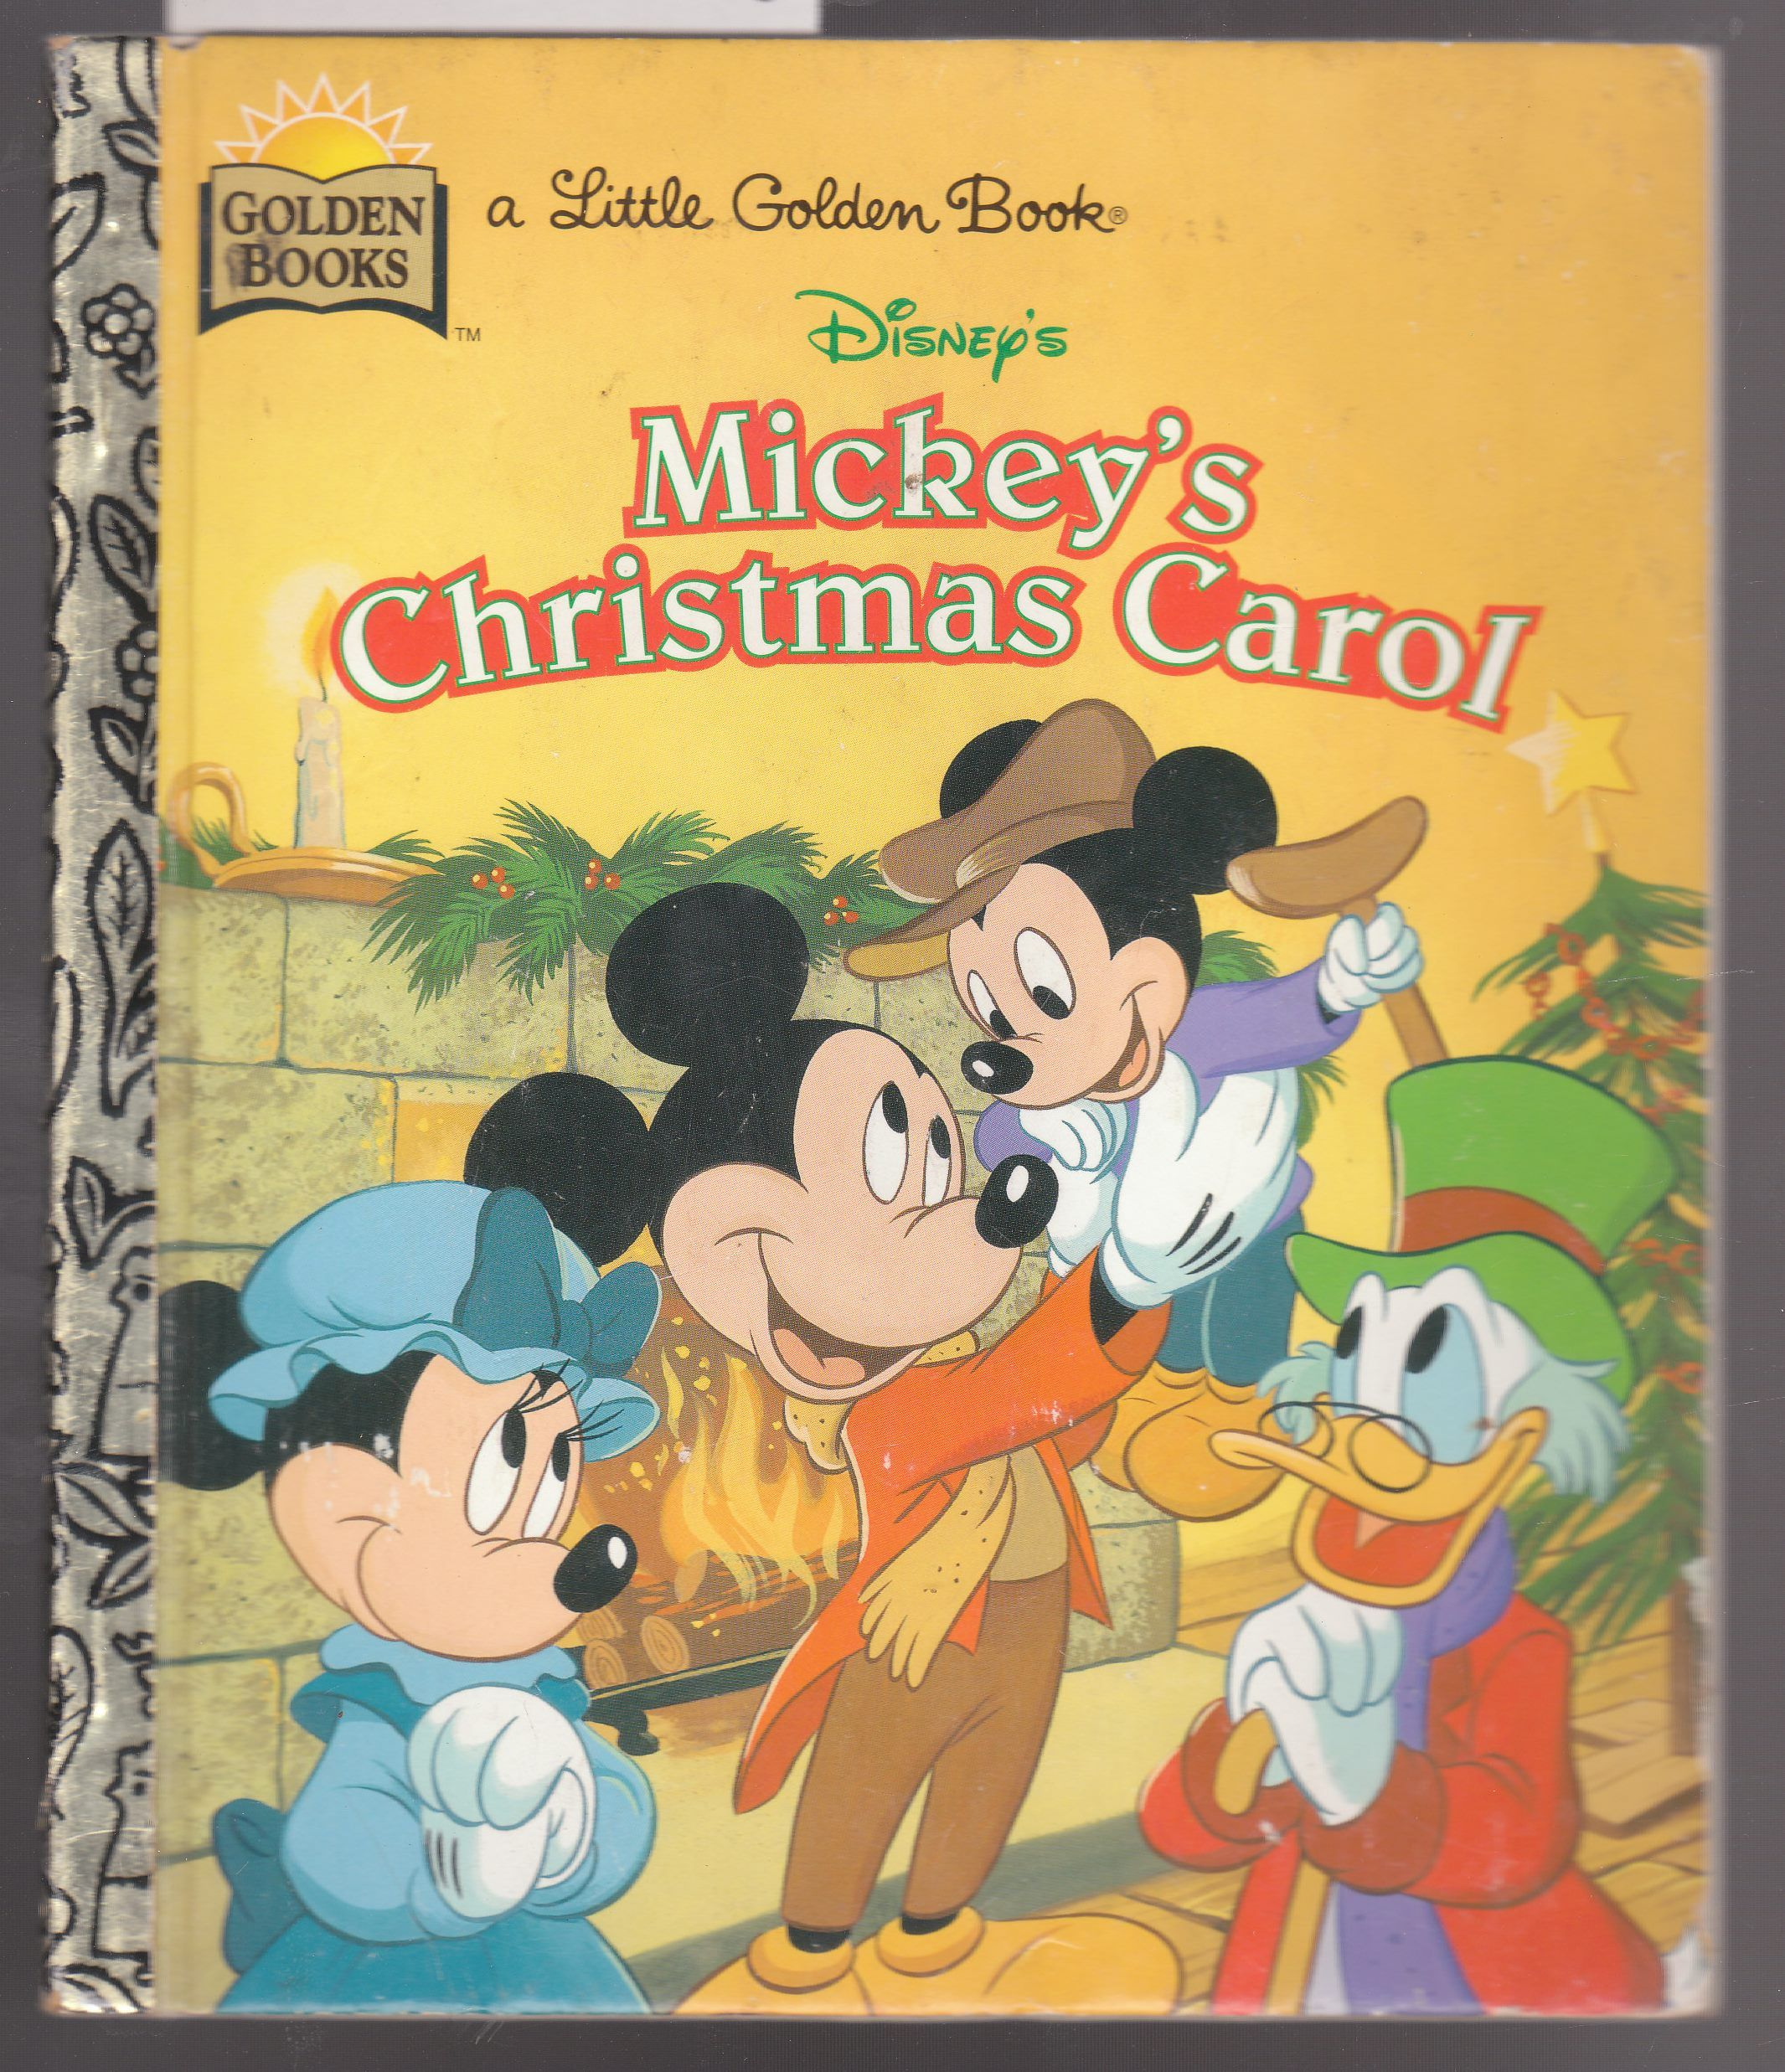 Christmas Carol Book.Disney S Mickey S Christmas Carol A Little Golden Book By Walt Disney First Edition 1970 From Laura Books And Biblio Com